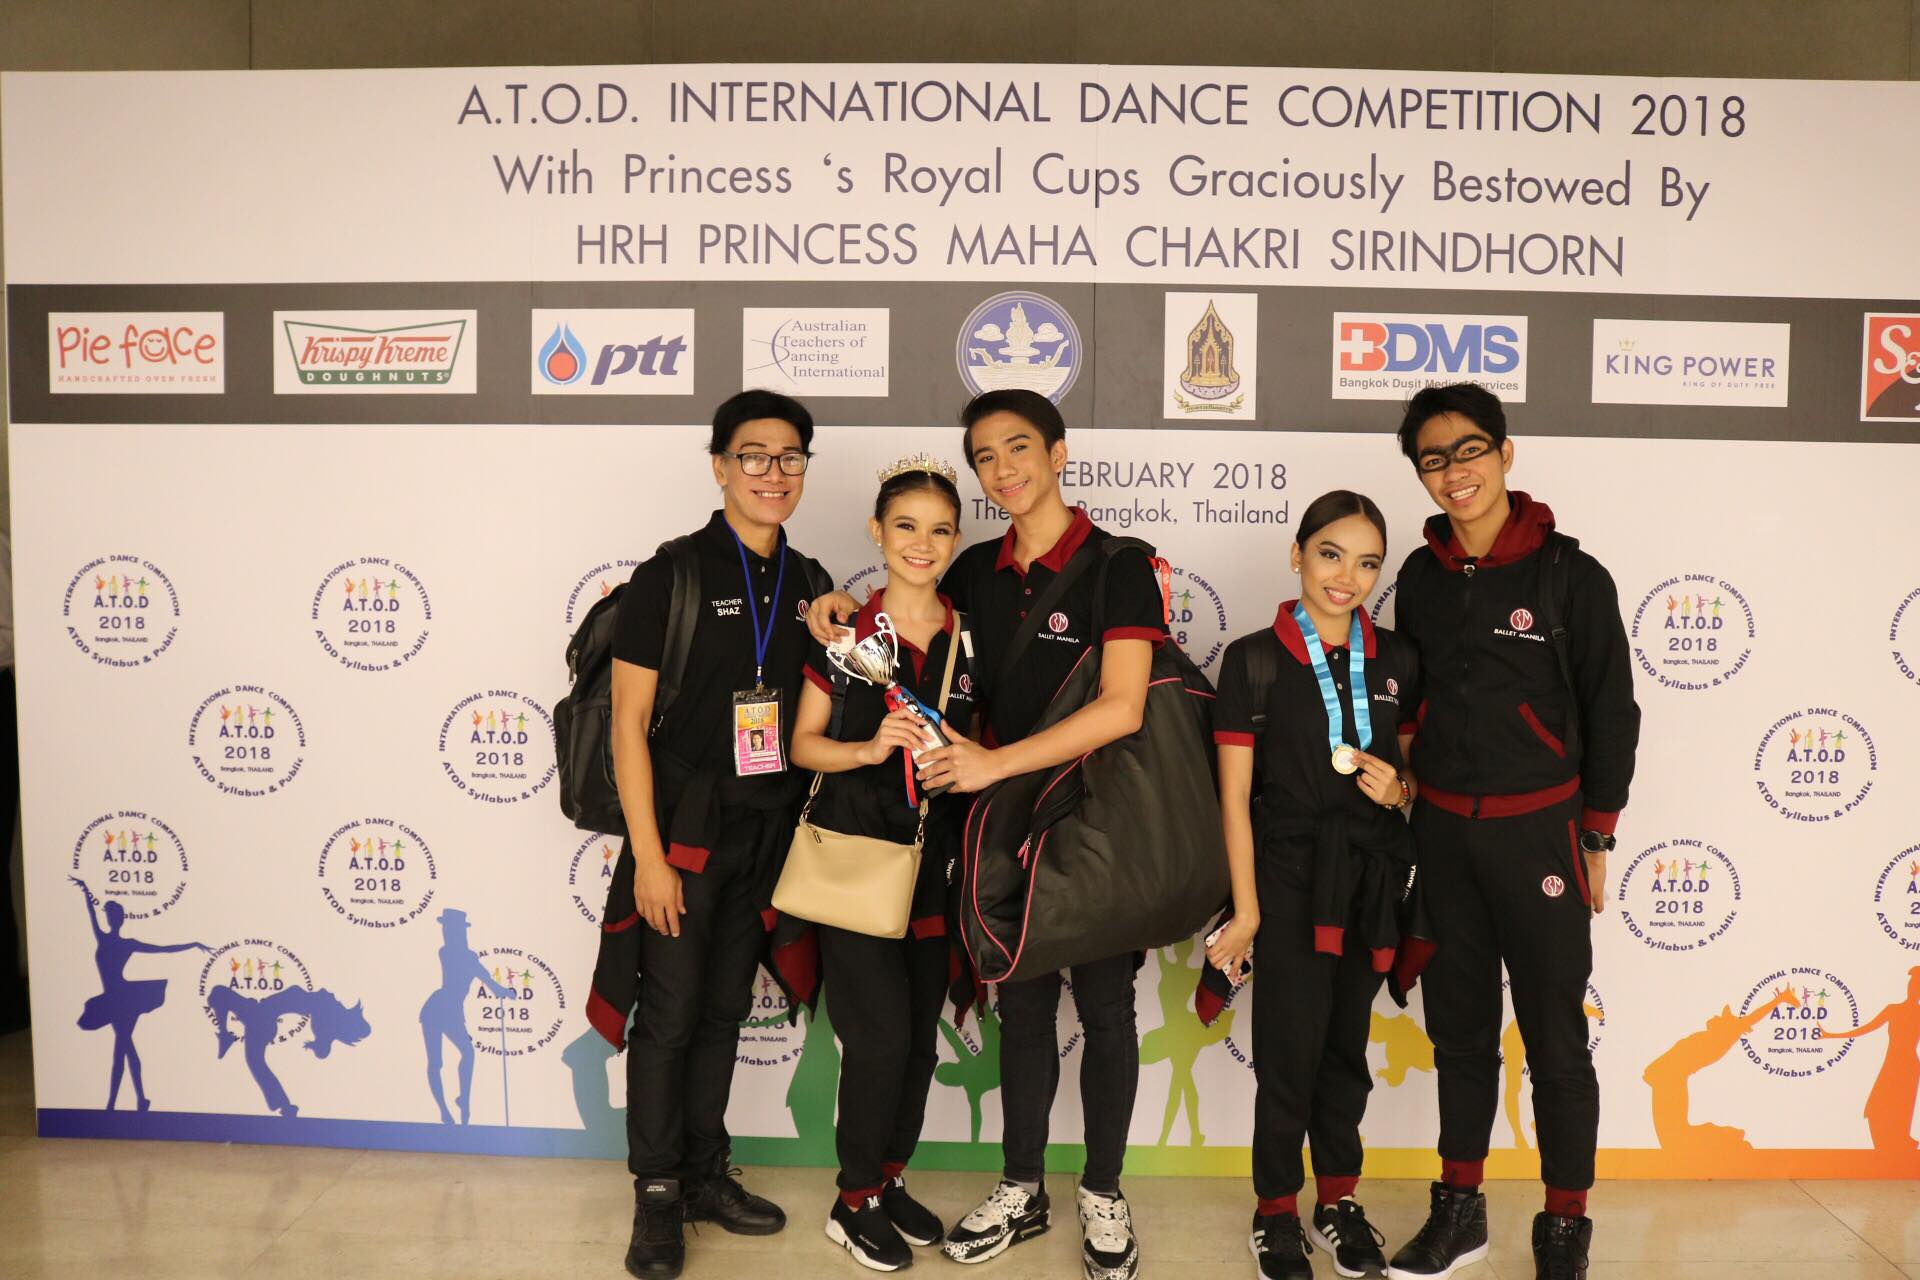 It was a thrill for Lyssa (second from right) to win honorable mention with partner Alvin Dictado (rightmost) at the ATOD competition in Bangkok. With them are their mentor, Osias Barroso, and fellow BM dancers Shaira Comeros and Brian Sevilla who won third place. Photo courtesy of Alvin Dictado